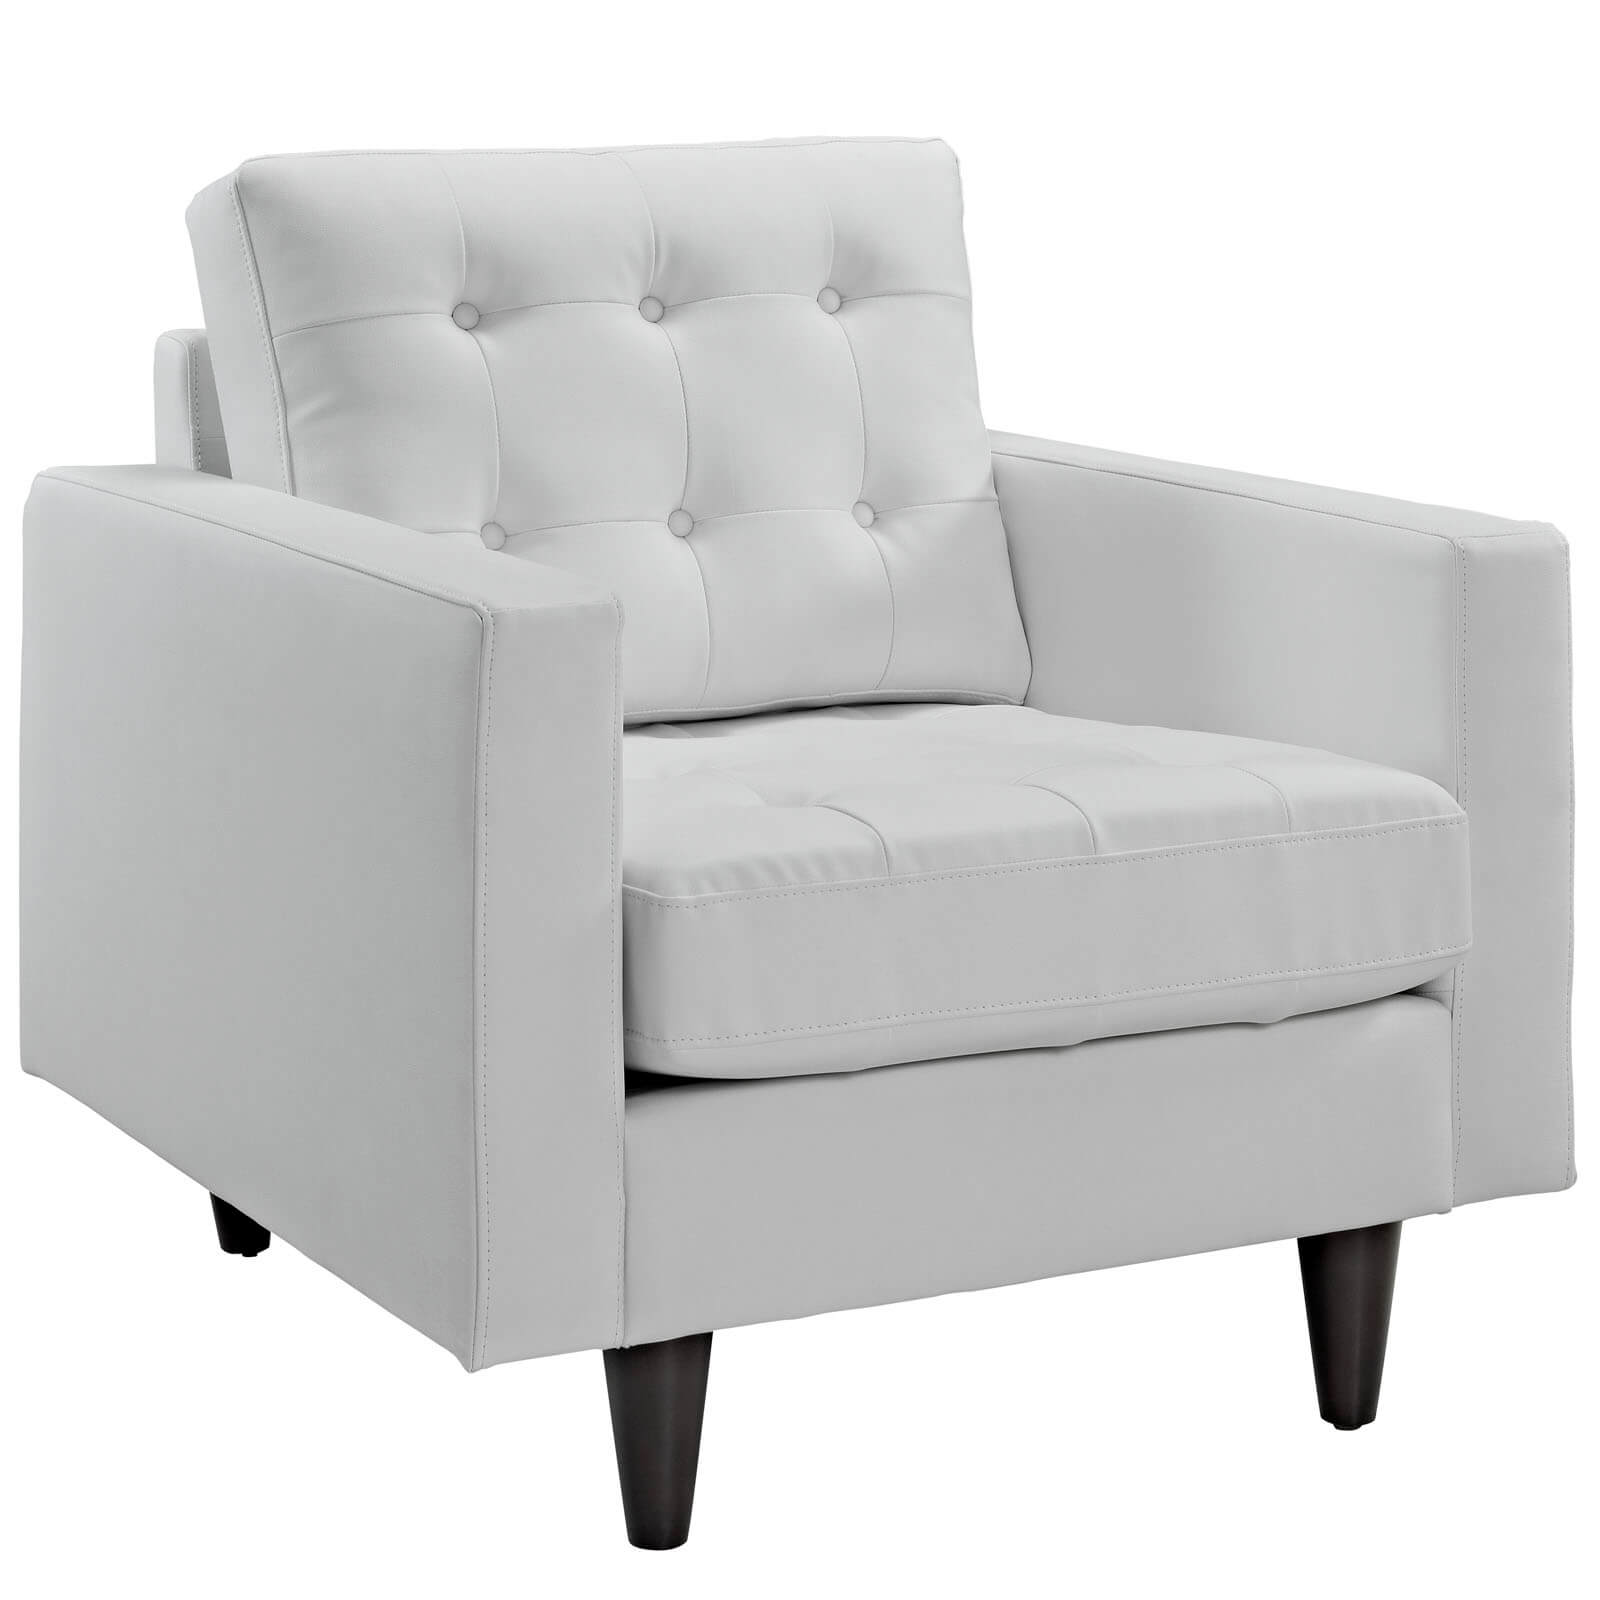 Attractive Empress Leather Armchair, White Buy Online At Best Price   SohoMod